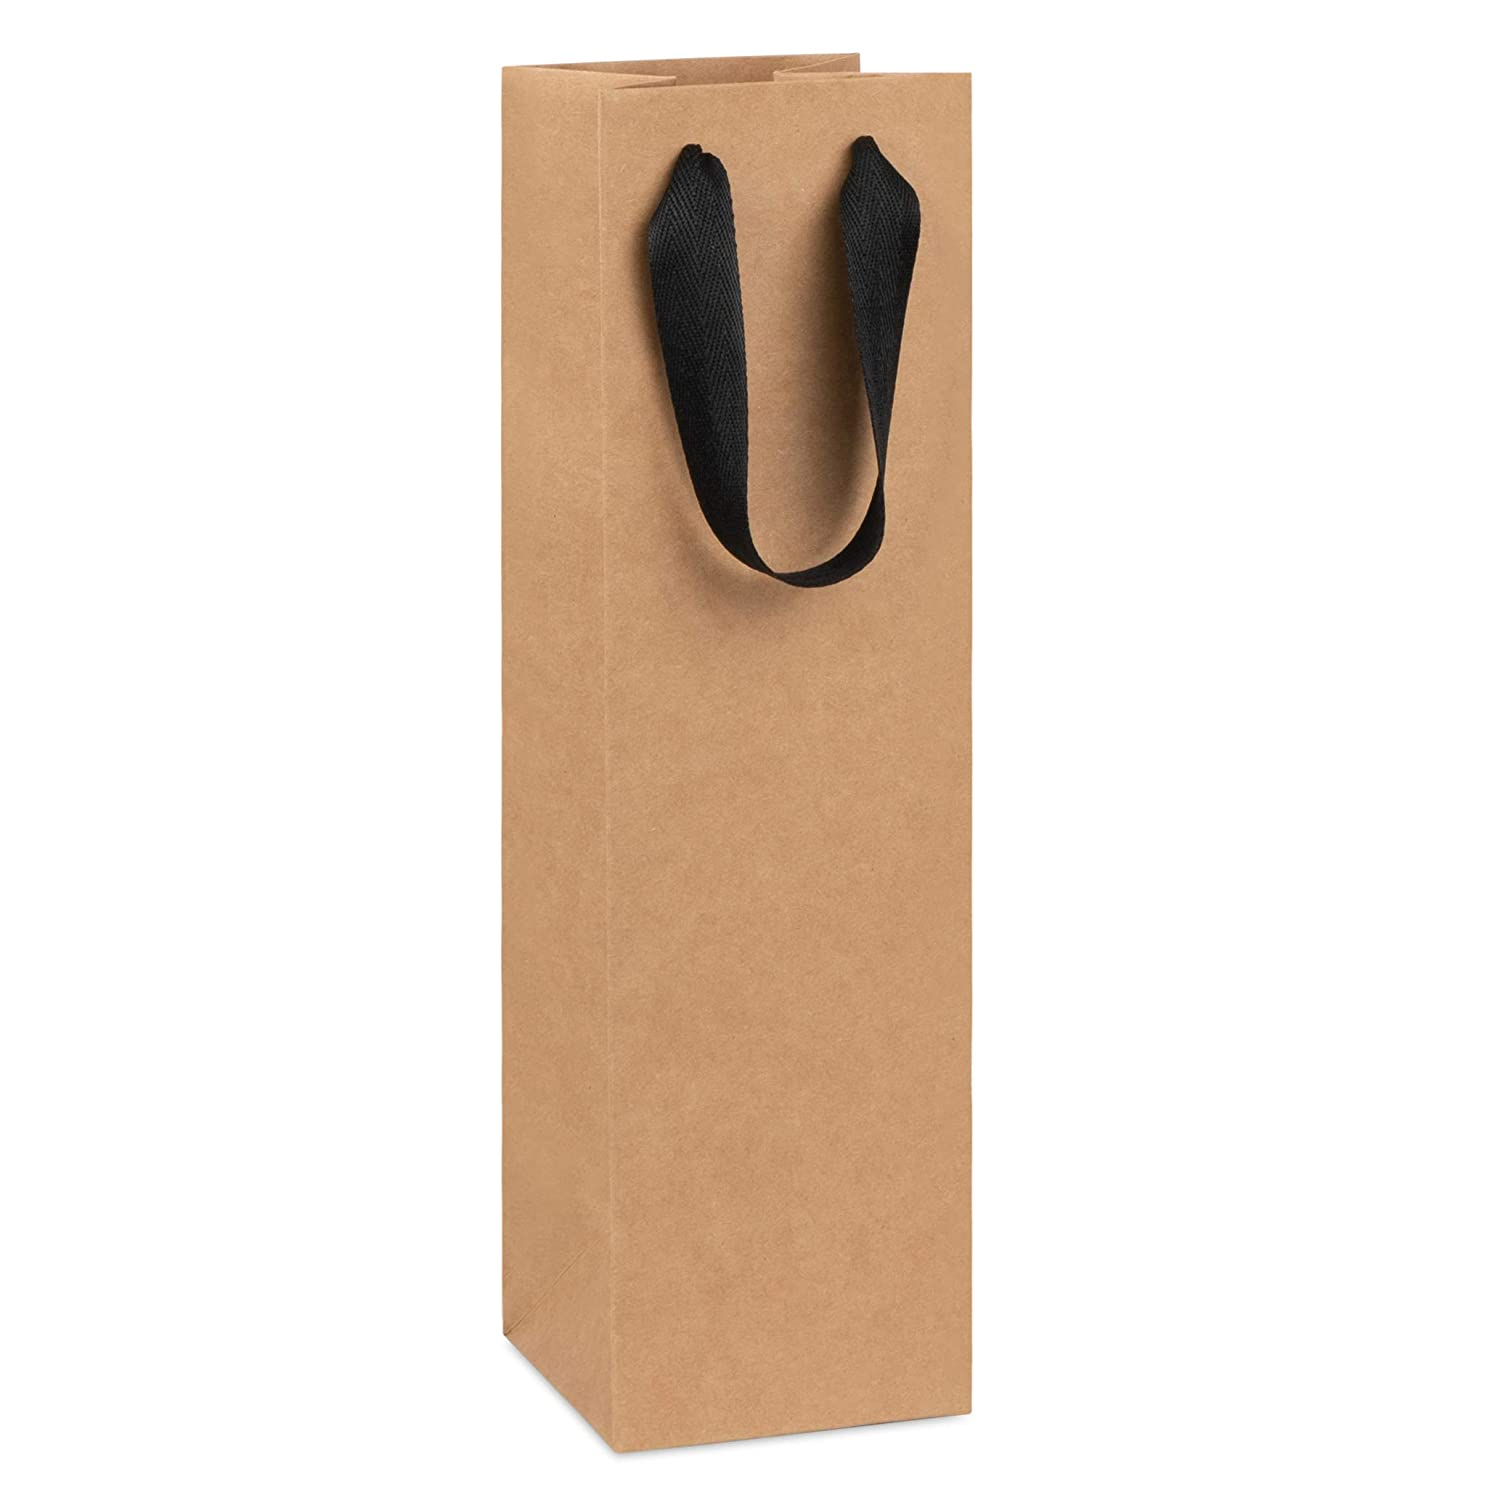 Wine Bag, Kraft Brown, for Wine Bottles, Whiskey/Spirits, Reusable Bag, Laminated for Extra Strength. (Kraft, 10 Pack)